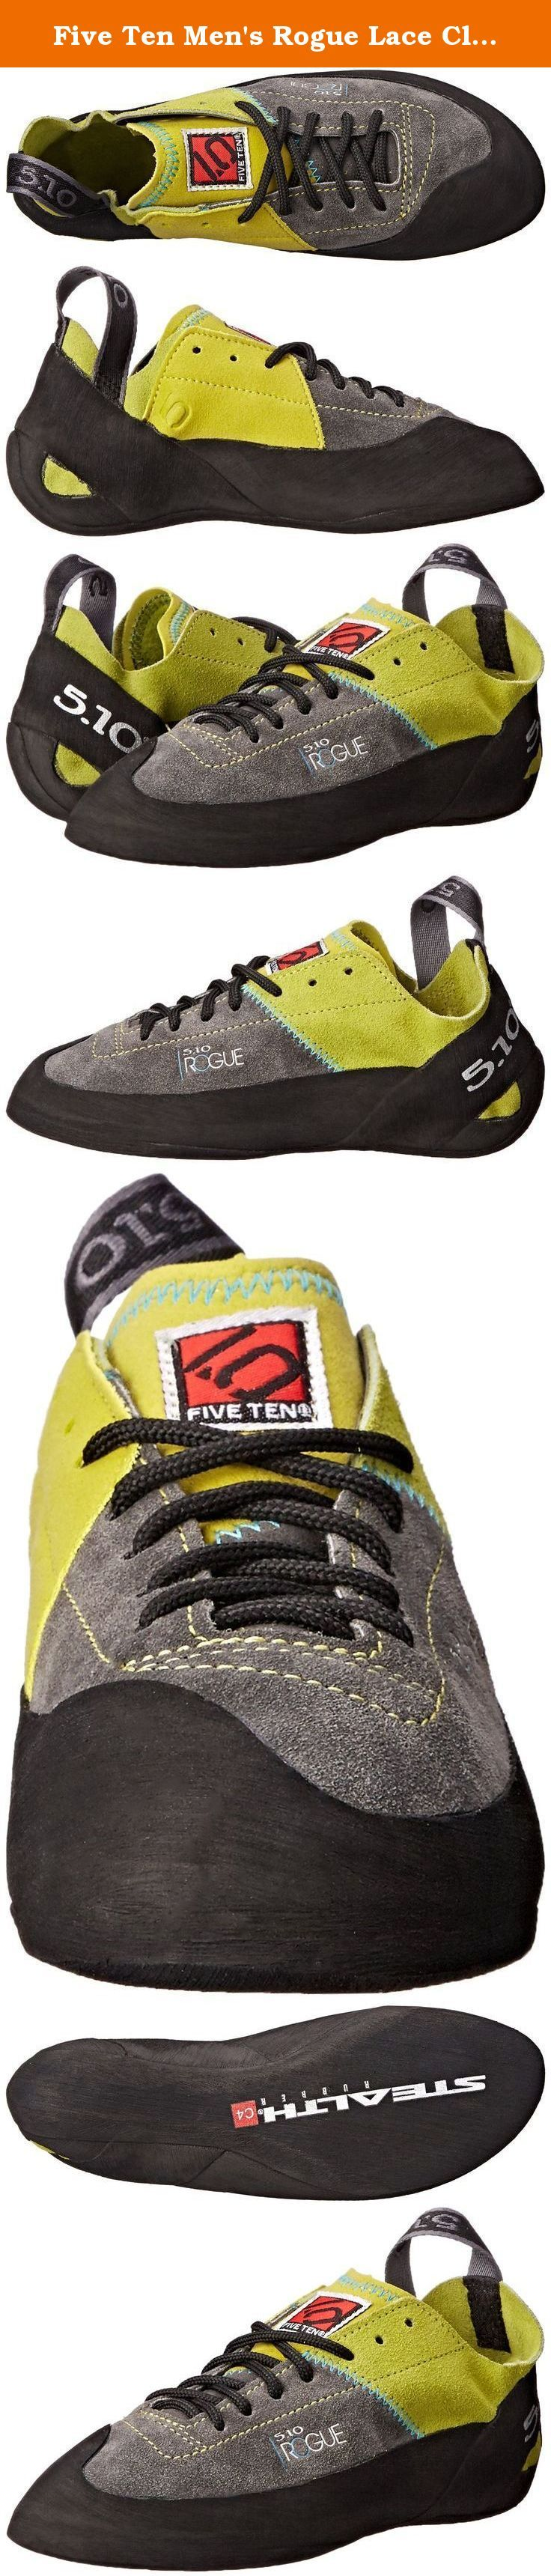 Five Ten Men's Rogue Lace Climbing Shoe,Green/Charcoal,5 M US. Five Ten, the Brand of the Brave, is a leader in performance, high-friction footwear. From downhill mountain bike racing to rock climbing, from wing suit flying to kayaking, Five Ten makes footwear for the world's most dangerous sports. The Redlands, California-based company has been producing cutting-edge designs and proprietary Stealth rubber soles for nearly 30 years. With the help of top national and international athletes...